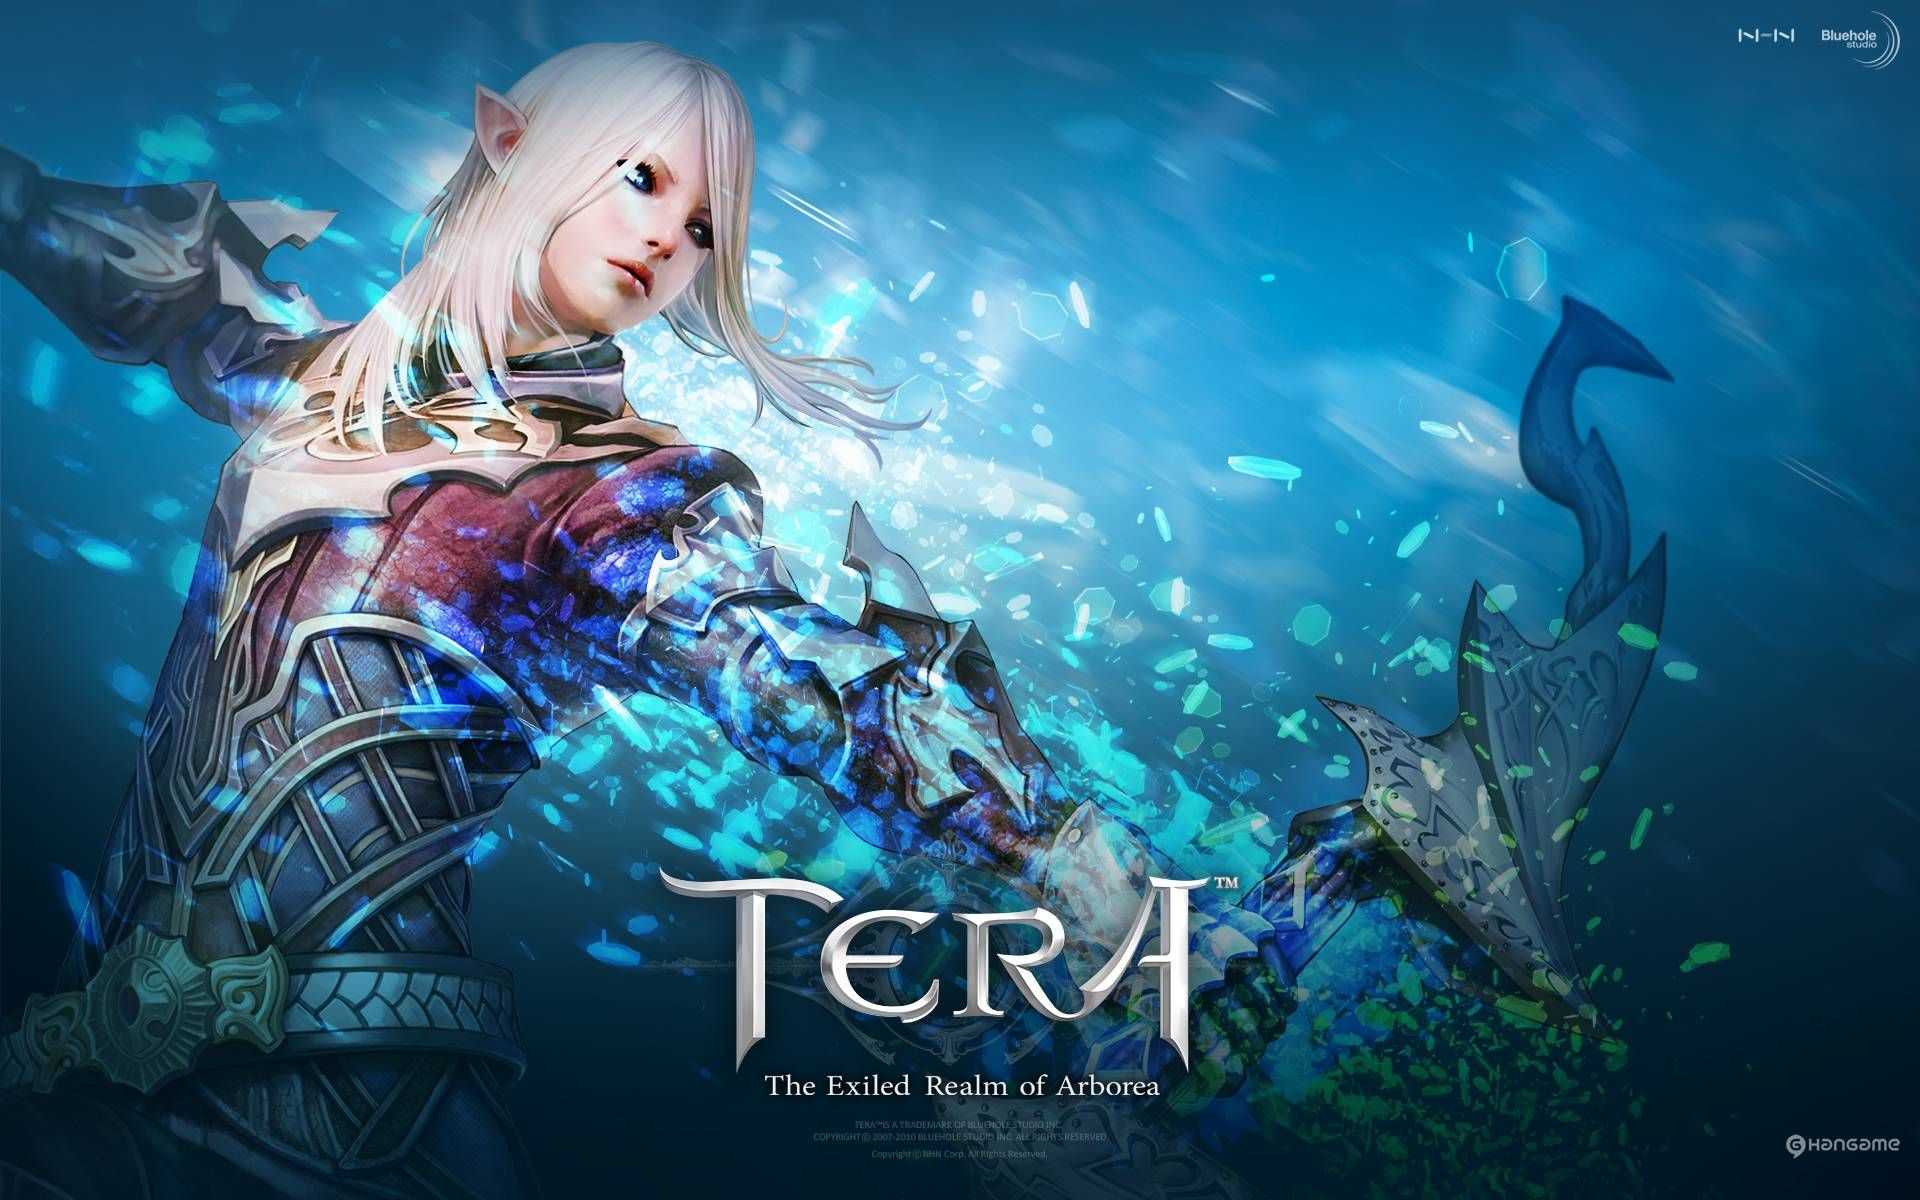 Tera wallpaper 9